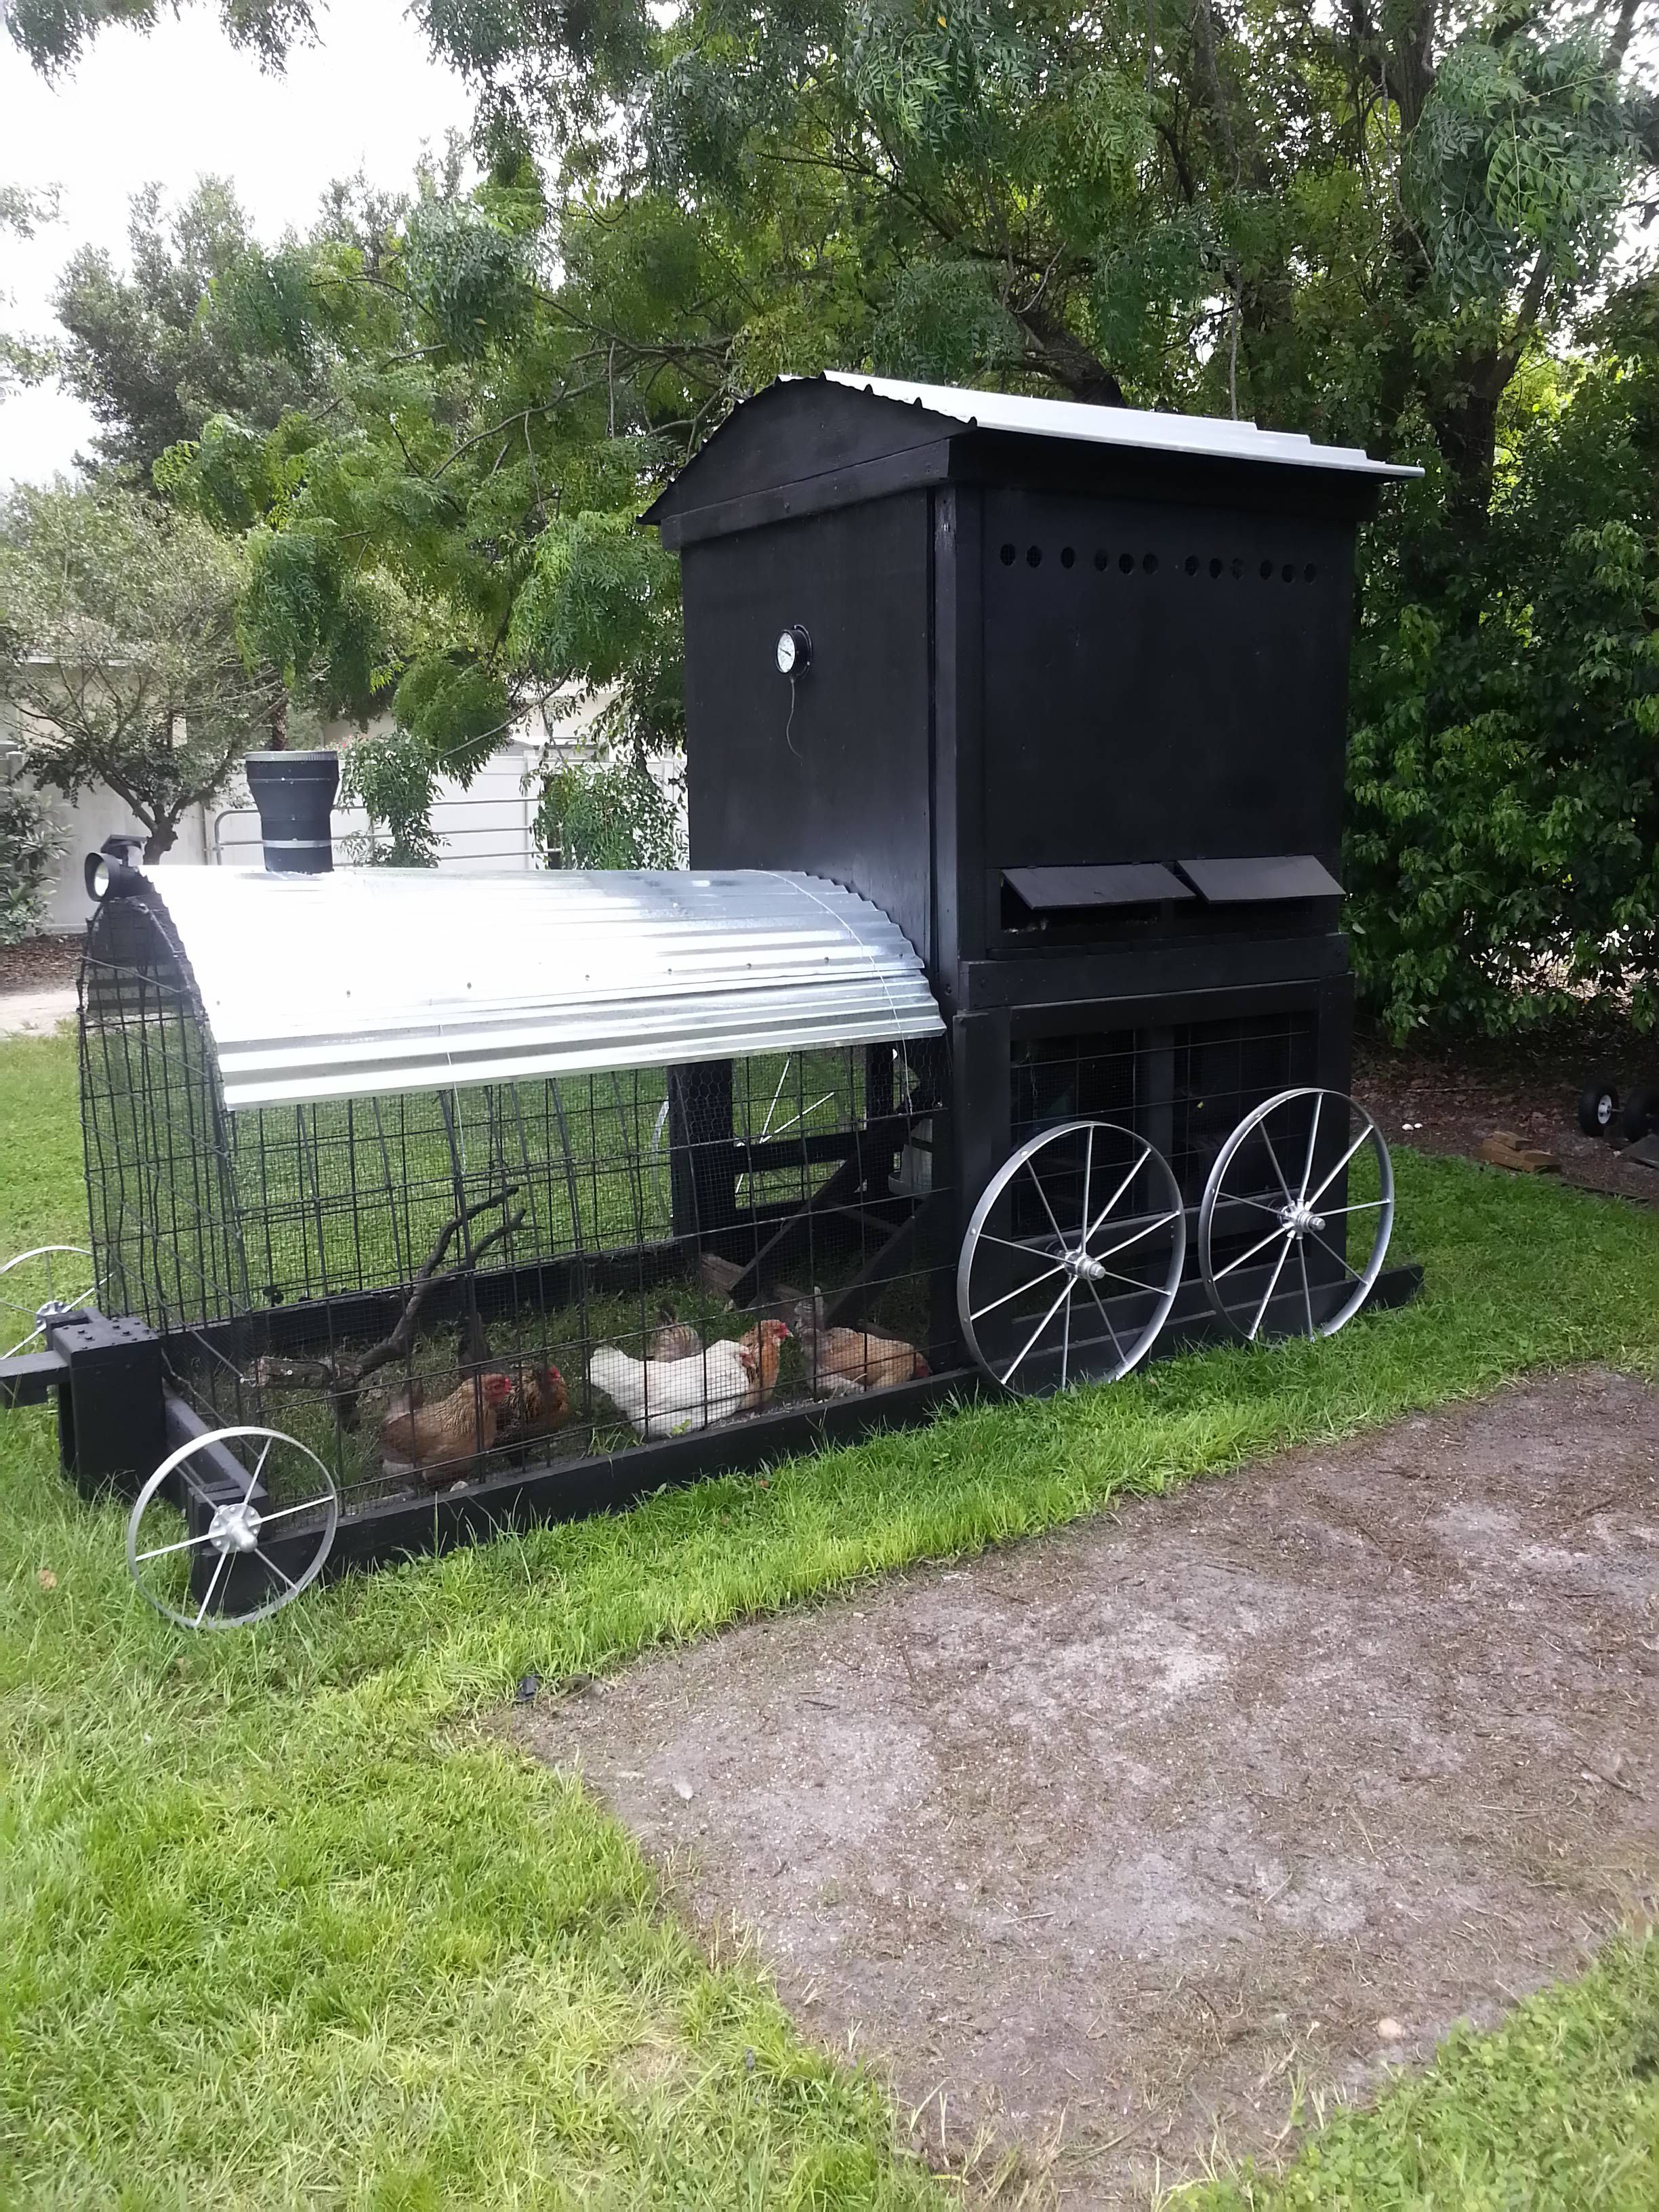 10 free mobile chicken coop plans in pdf, with drawing, blueprints ...